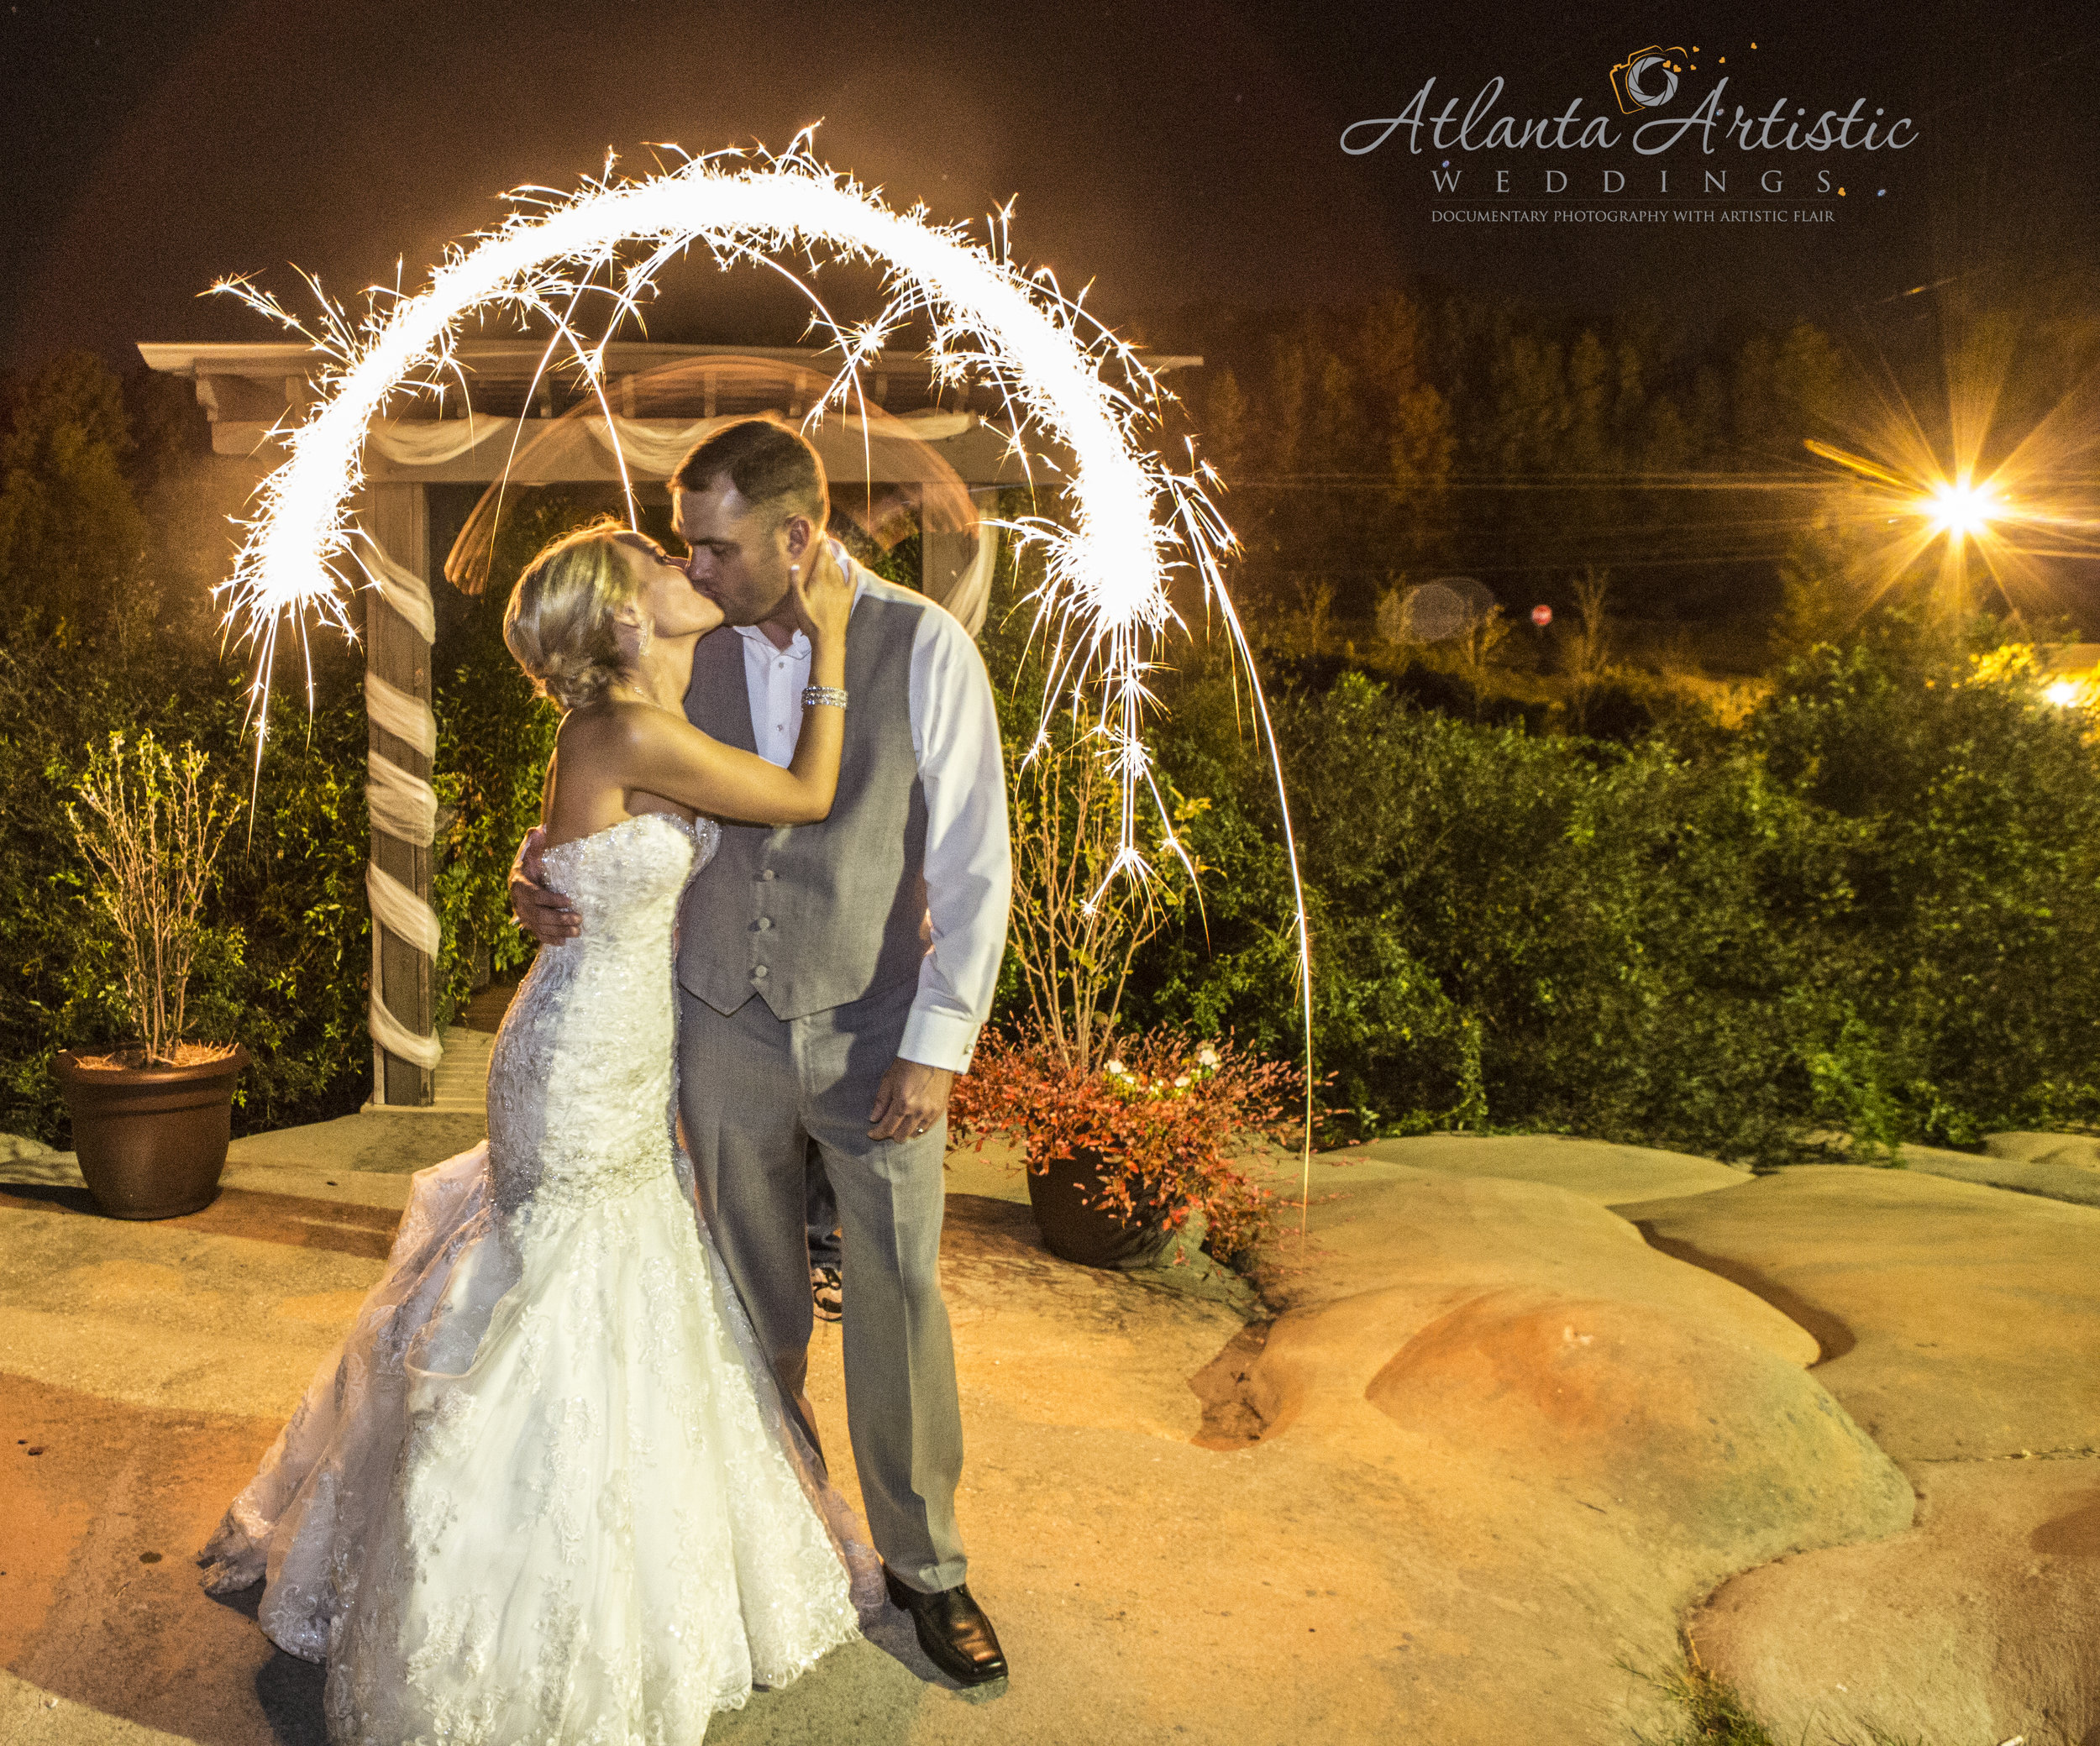 Sparkler Exit by the Atlanta Wedding Photographers at www.AtlantaArtisticWeddings.com